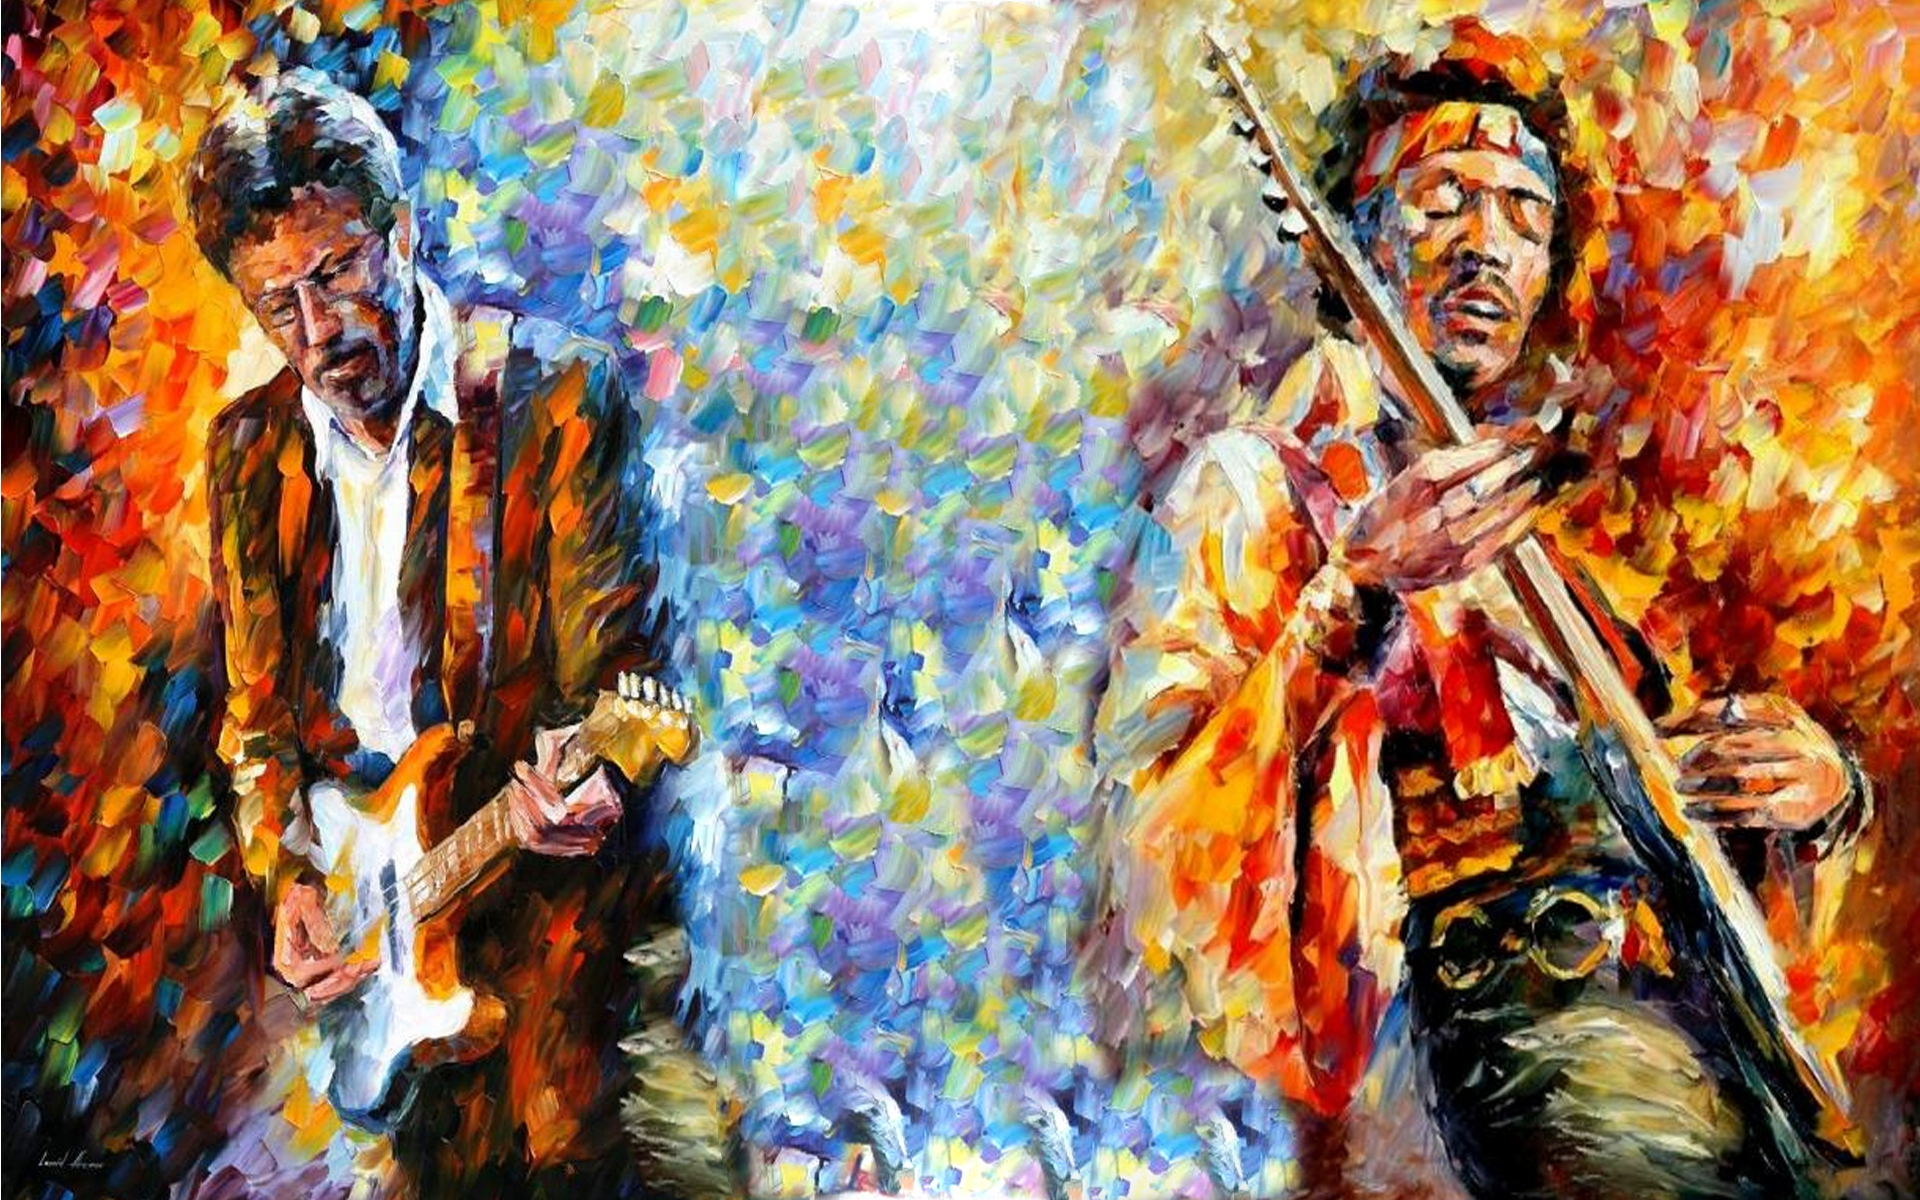 Jimi Hendrix Wallpaper 33 HD Desktop Wallpapers 1920x1200